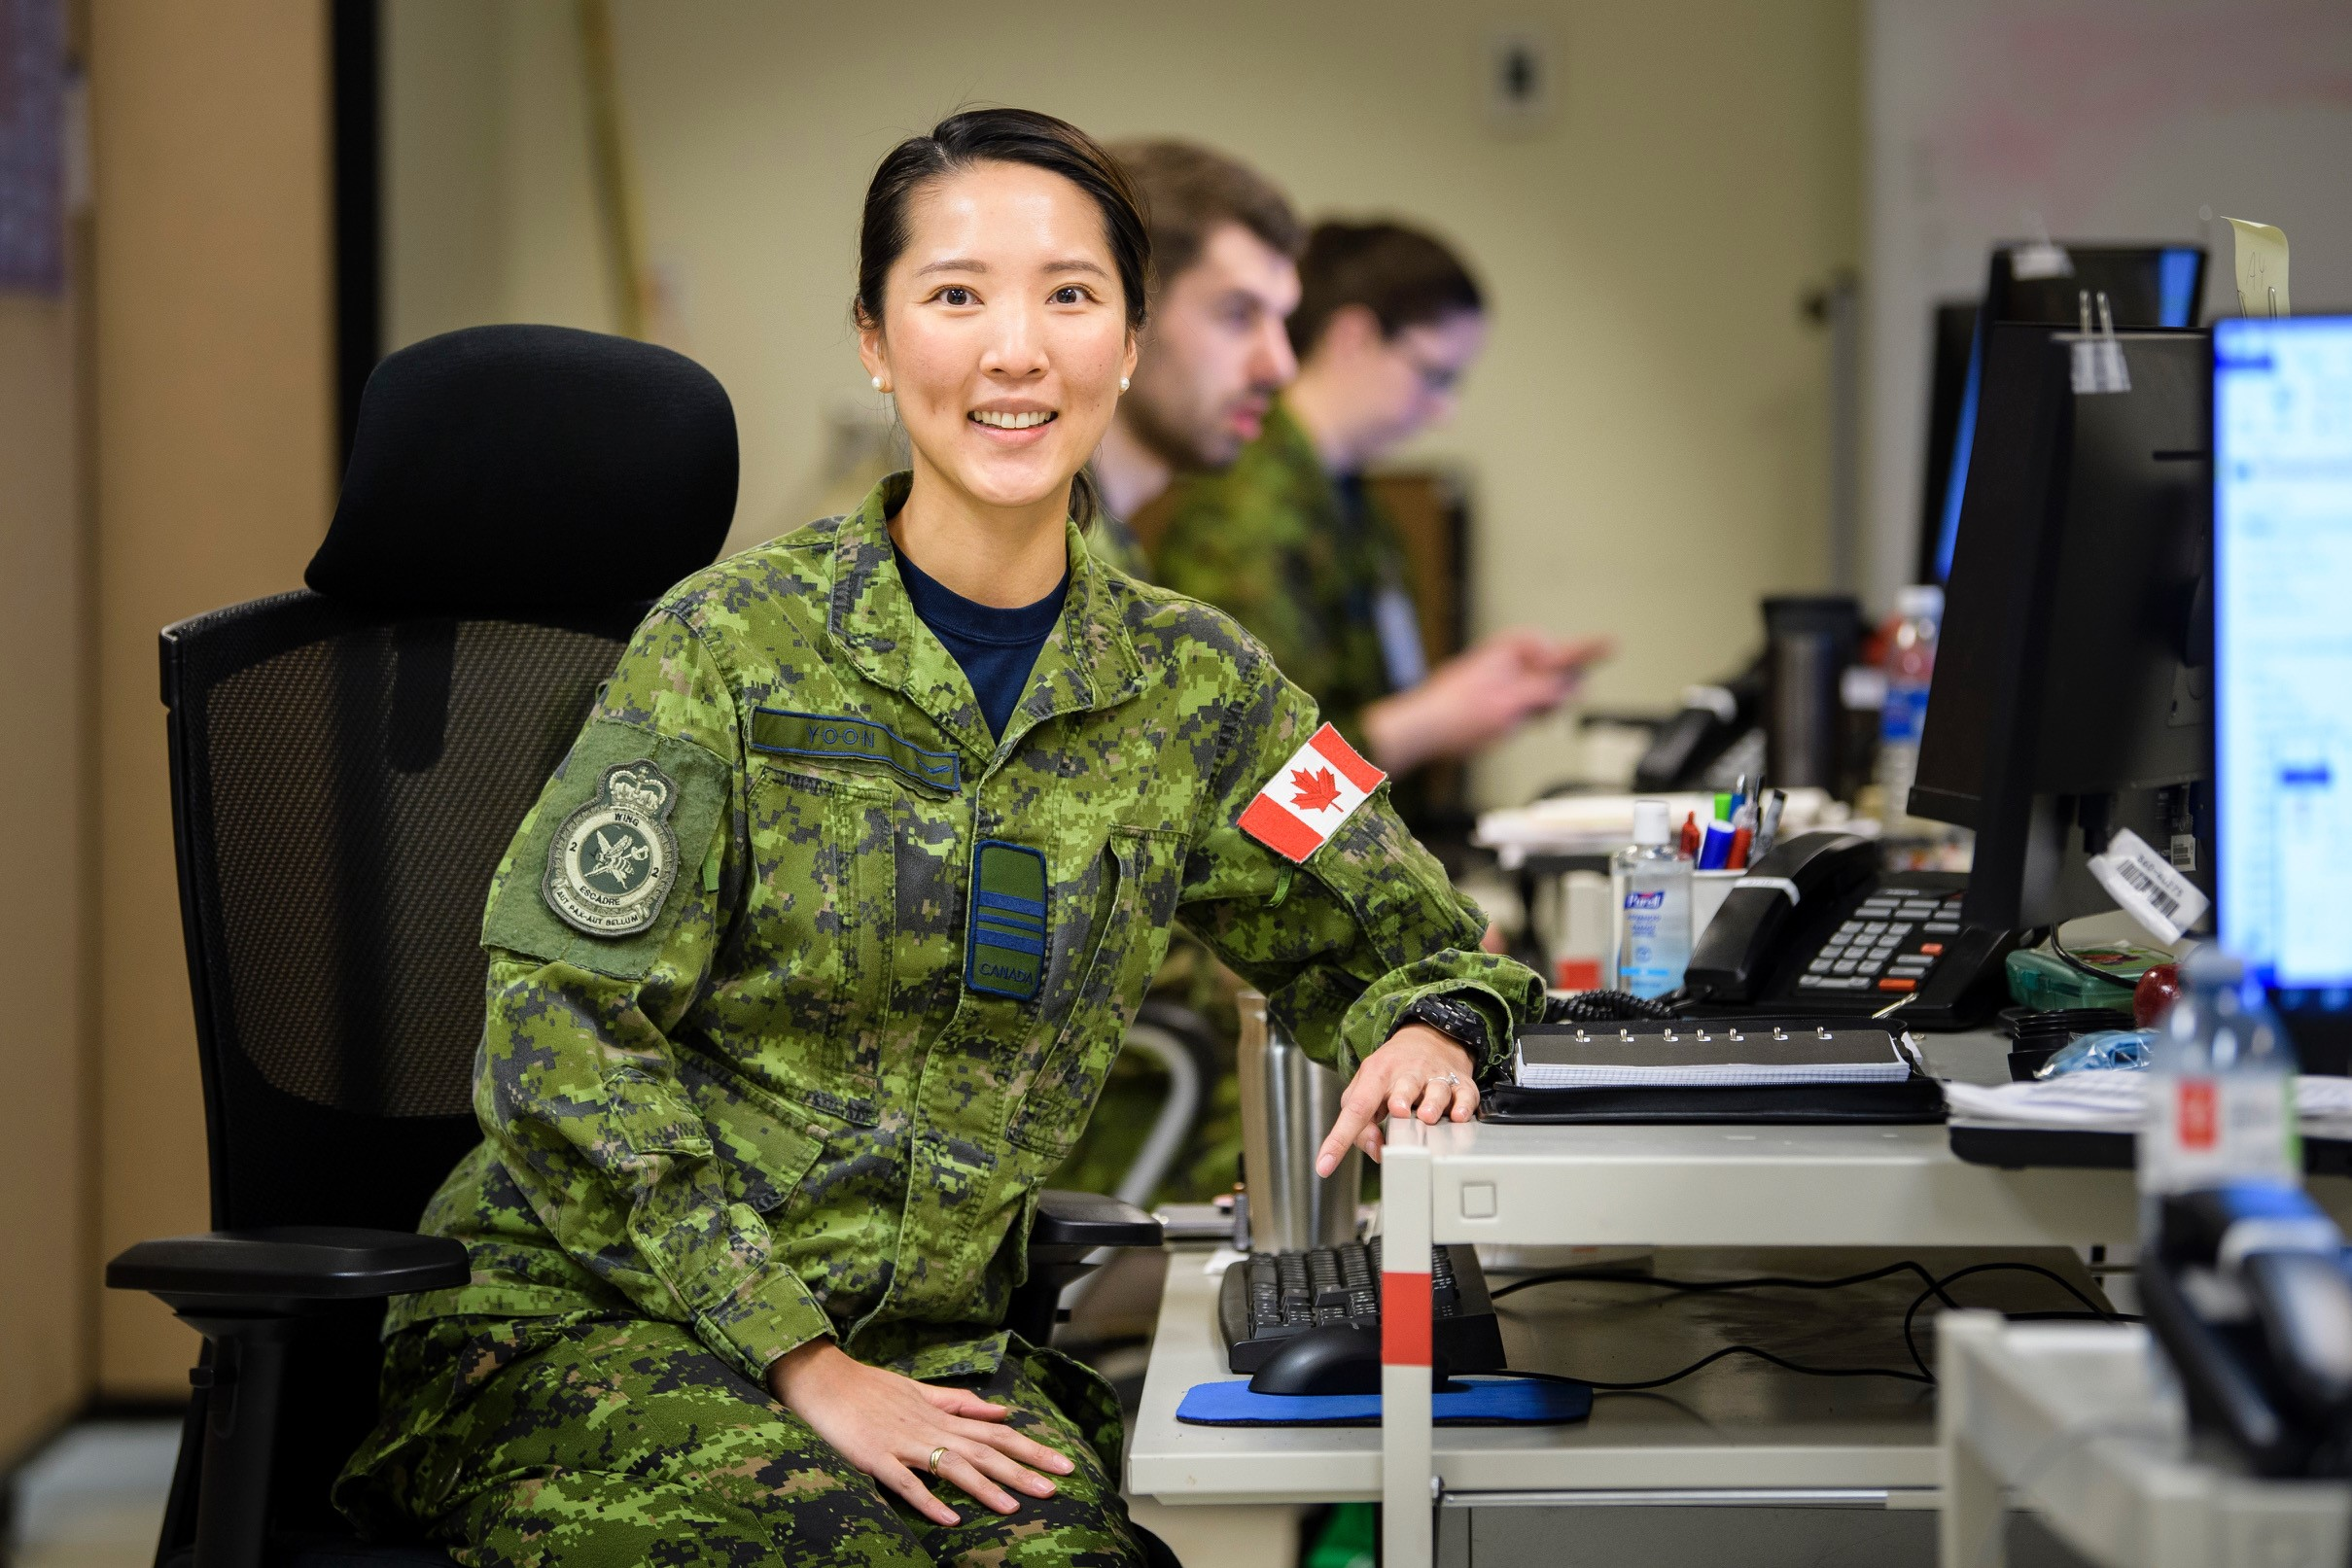 Major Jane Yoon, Operation LASER Air Task Force Logistics Officer, pictured here with her colleagues at the team's headquarters in Kingston, Ontario, on April 22, 2020. PHOTO: Steve McQuaid